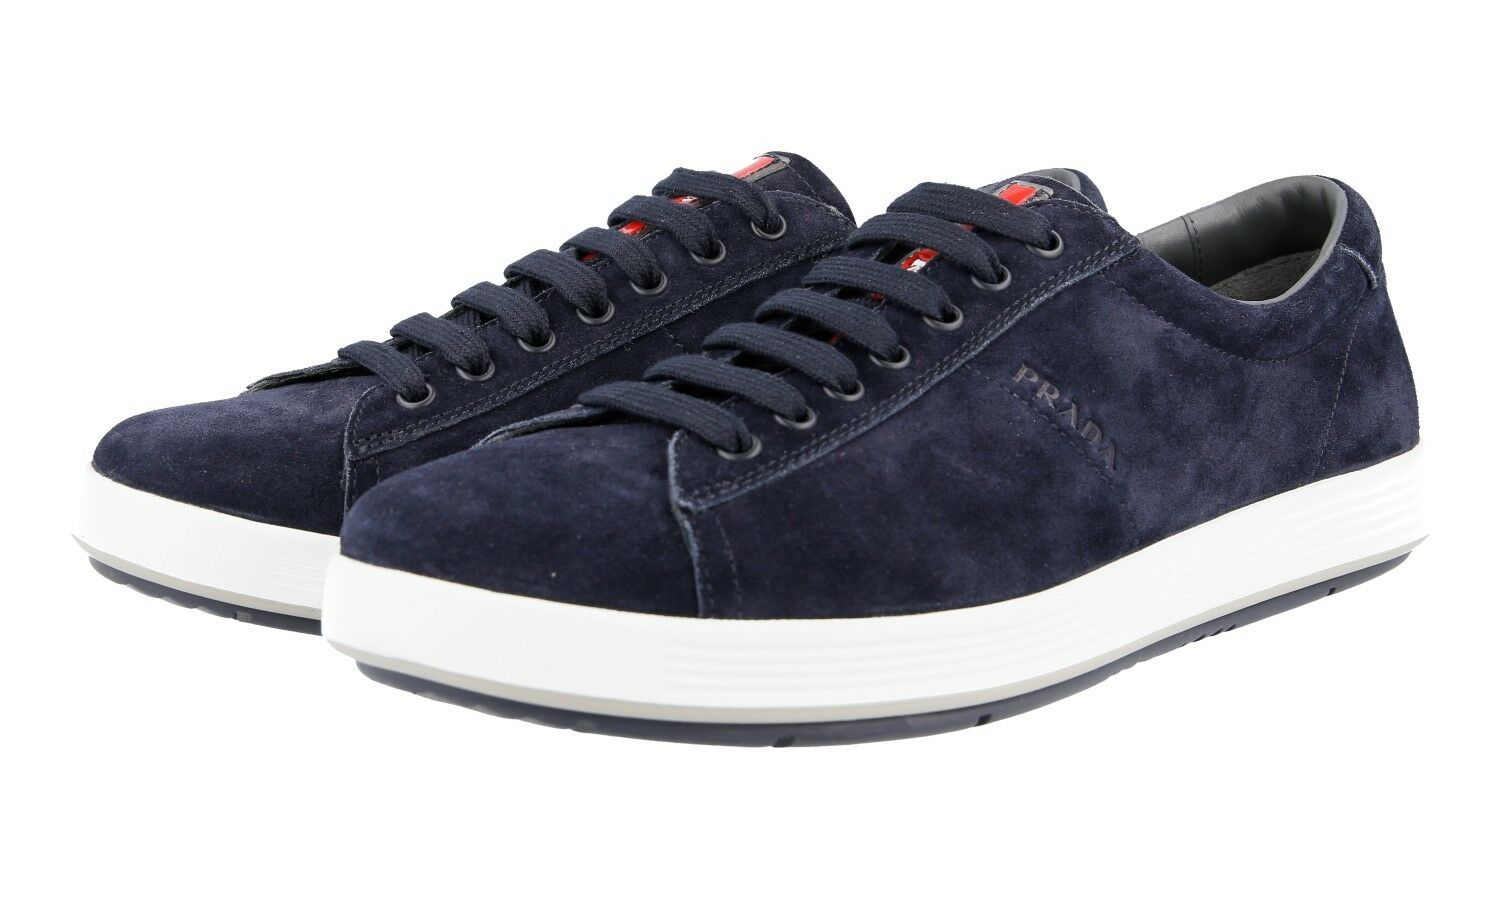 AUTH LUXURY PRADA SNEAKERS SHOES 4E2860 blueE SUEDE NEW 7,5 41,5 42